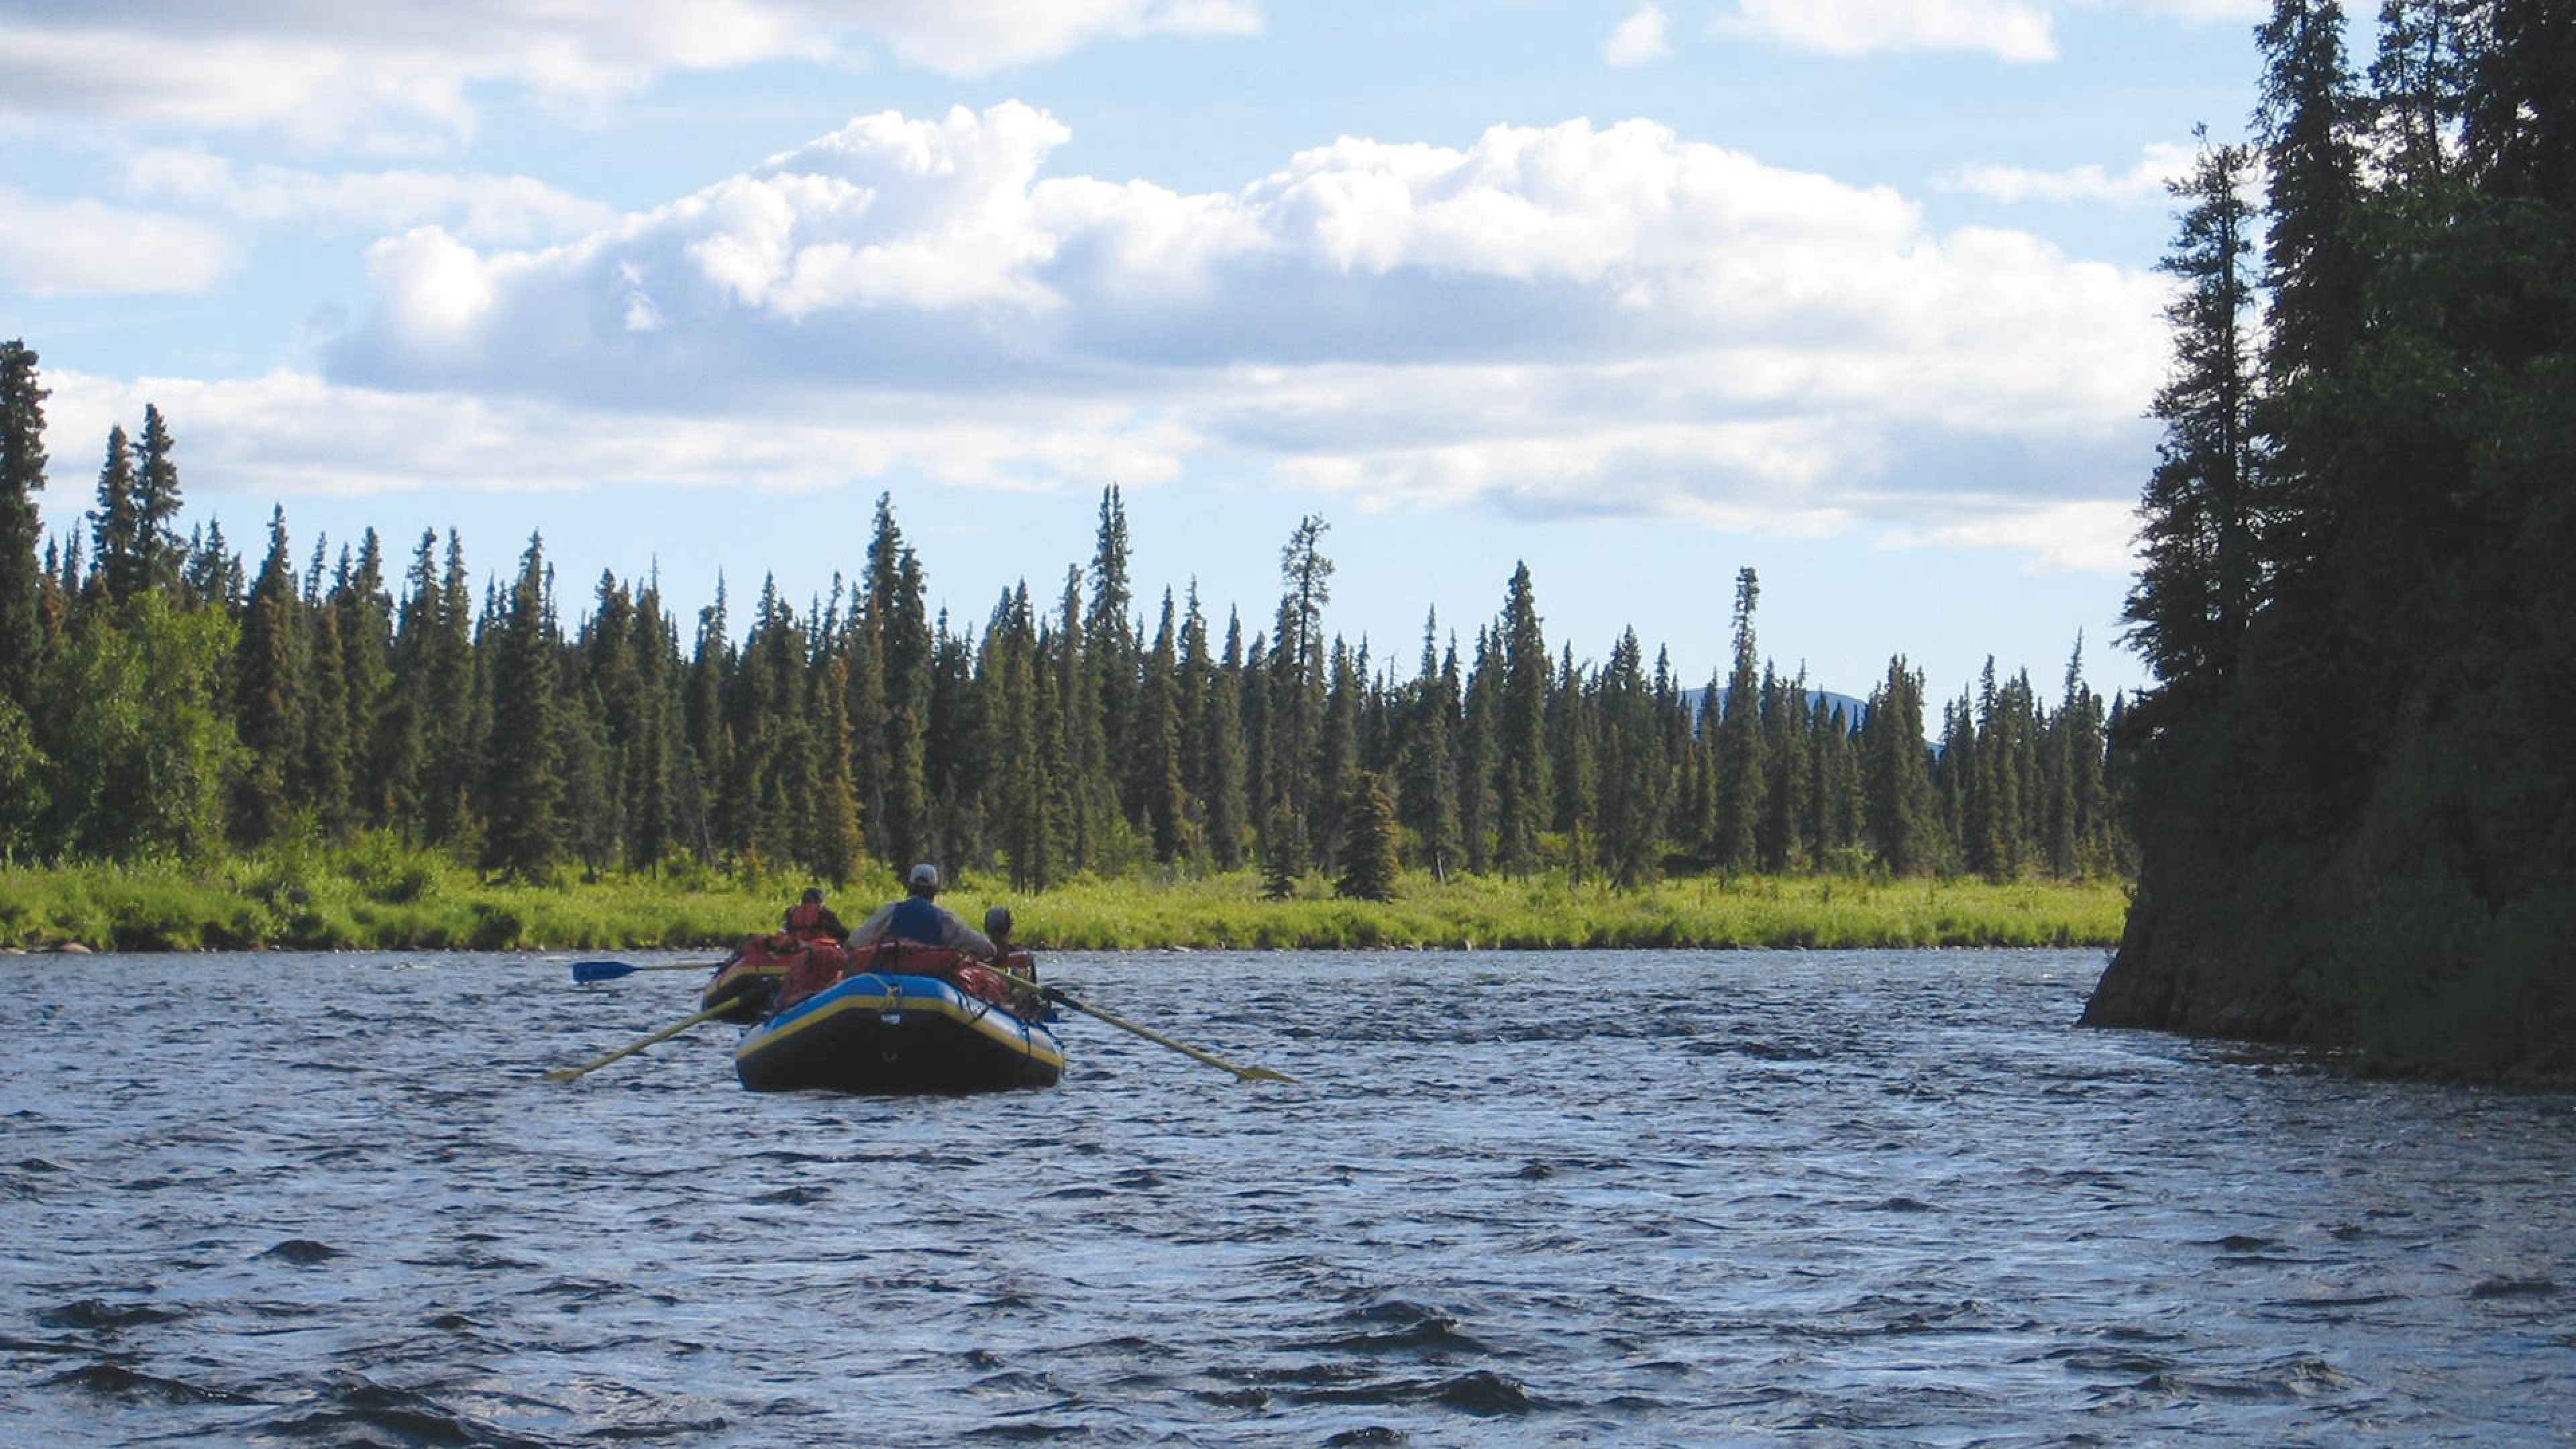 Rafters on the Alagnak Wild River